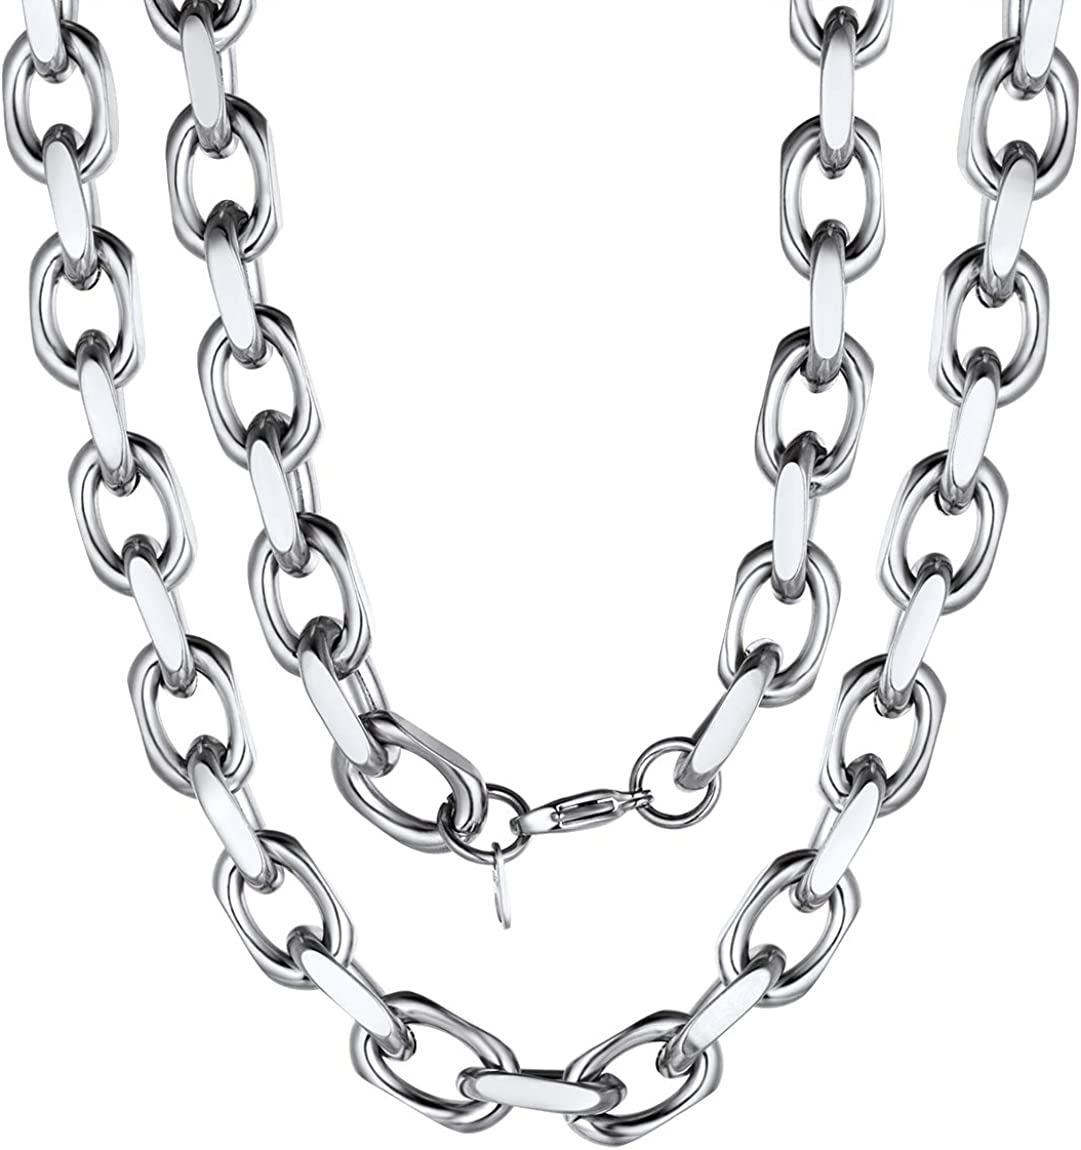 ChainsPro Heavy Duty Oval Rolo Cable Chain Necklace,6/8/11MM Width,18/20/22/24/26/28/30 Inches,316L Stainless Steel/18K Gold Tone (Send Gift Box)